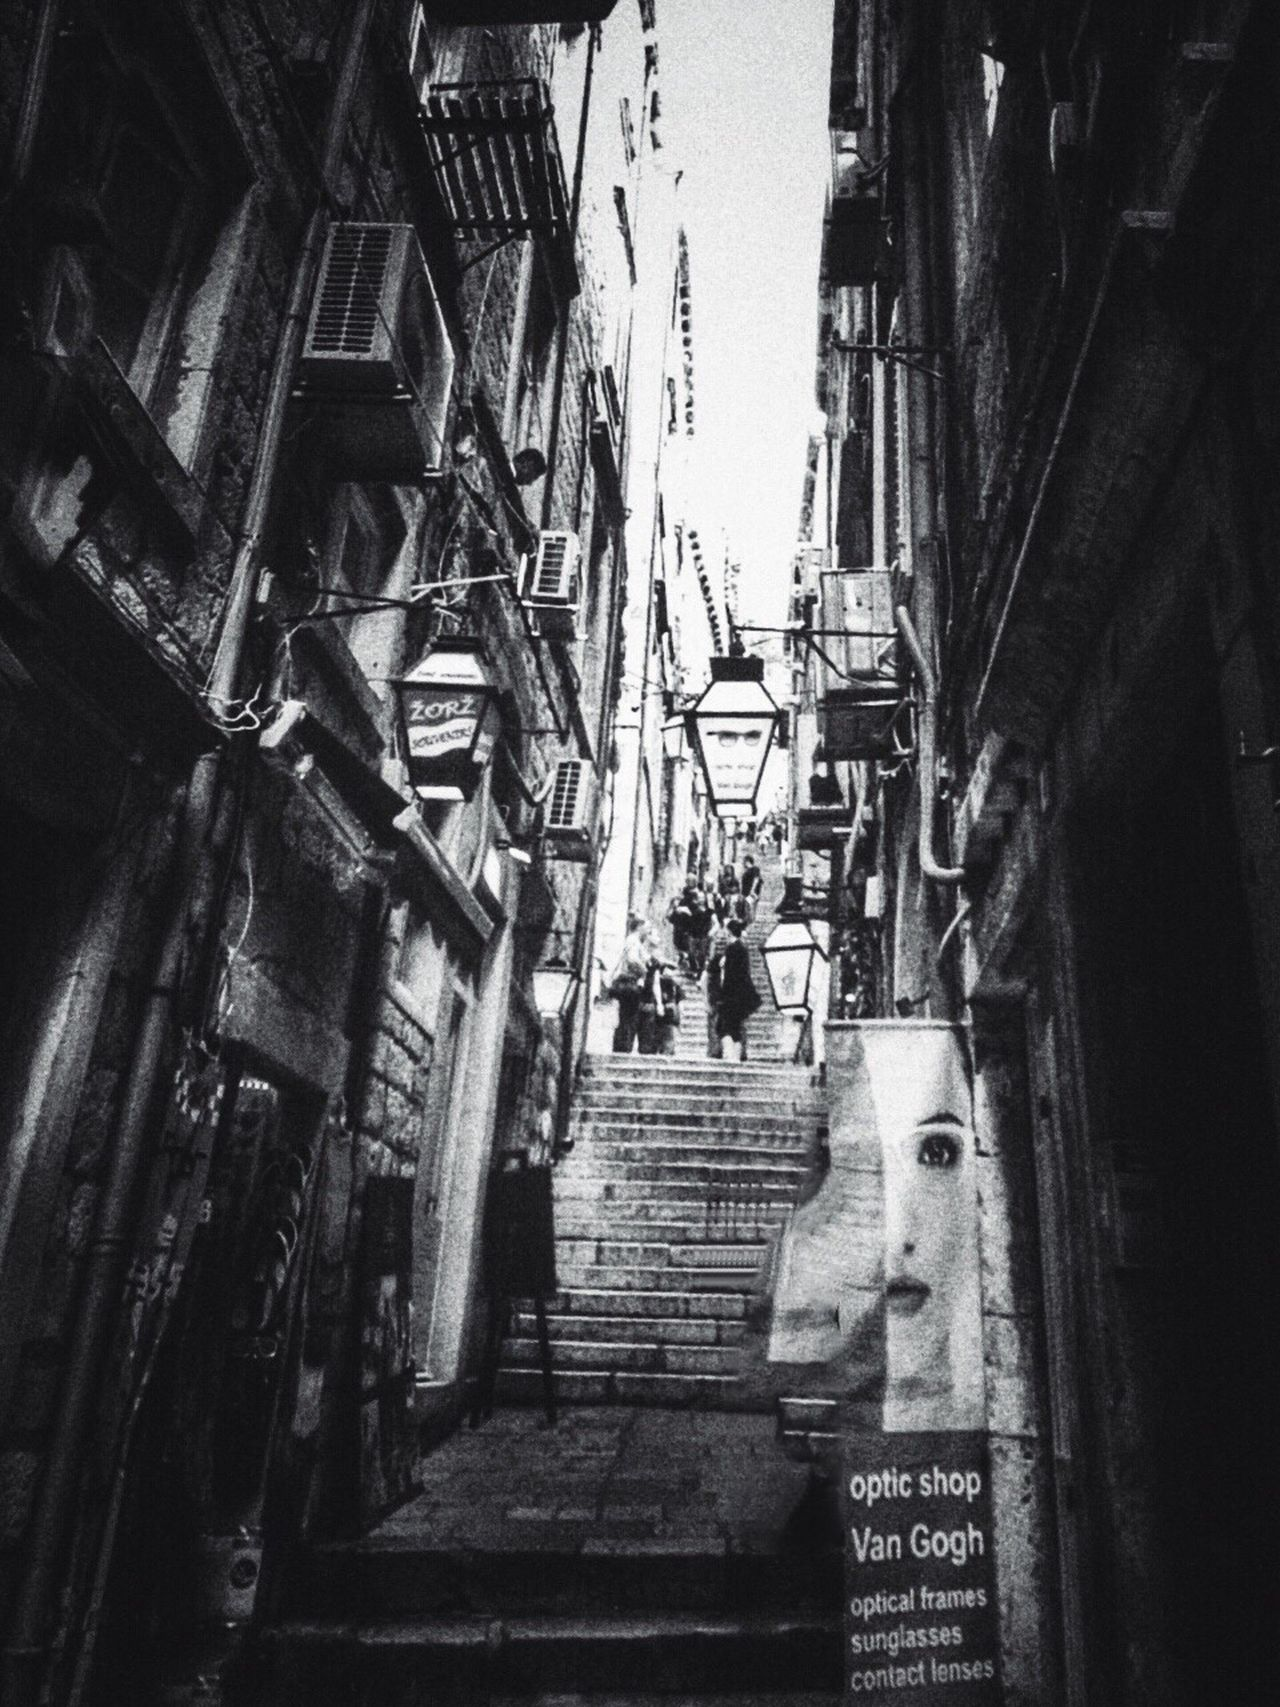 Croatia Dubrovnik Dubrovnik, Croatia Dubrovnik - Croatia❤ Iphoneonly IPhone Iphonephotography IPhone Photography IPhoneography Superciaowei Travel Travel Photography Upclose Street Photography Black&white Blackandwhitephotography Blackandwhite Photography Black And White Photography Black & White Black And White Blackandwhite Blacknwhite Enjoying Life The Street Photographer - 2016 EyeEm Awards 2016 EyeEm Awards The Great Outdoors - 2016 EyeEm Awards